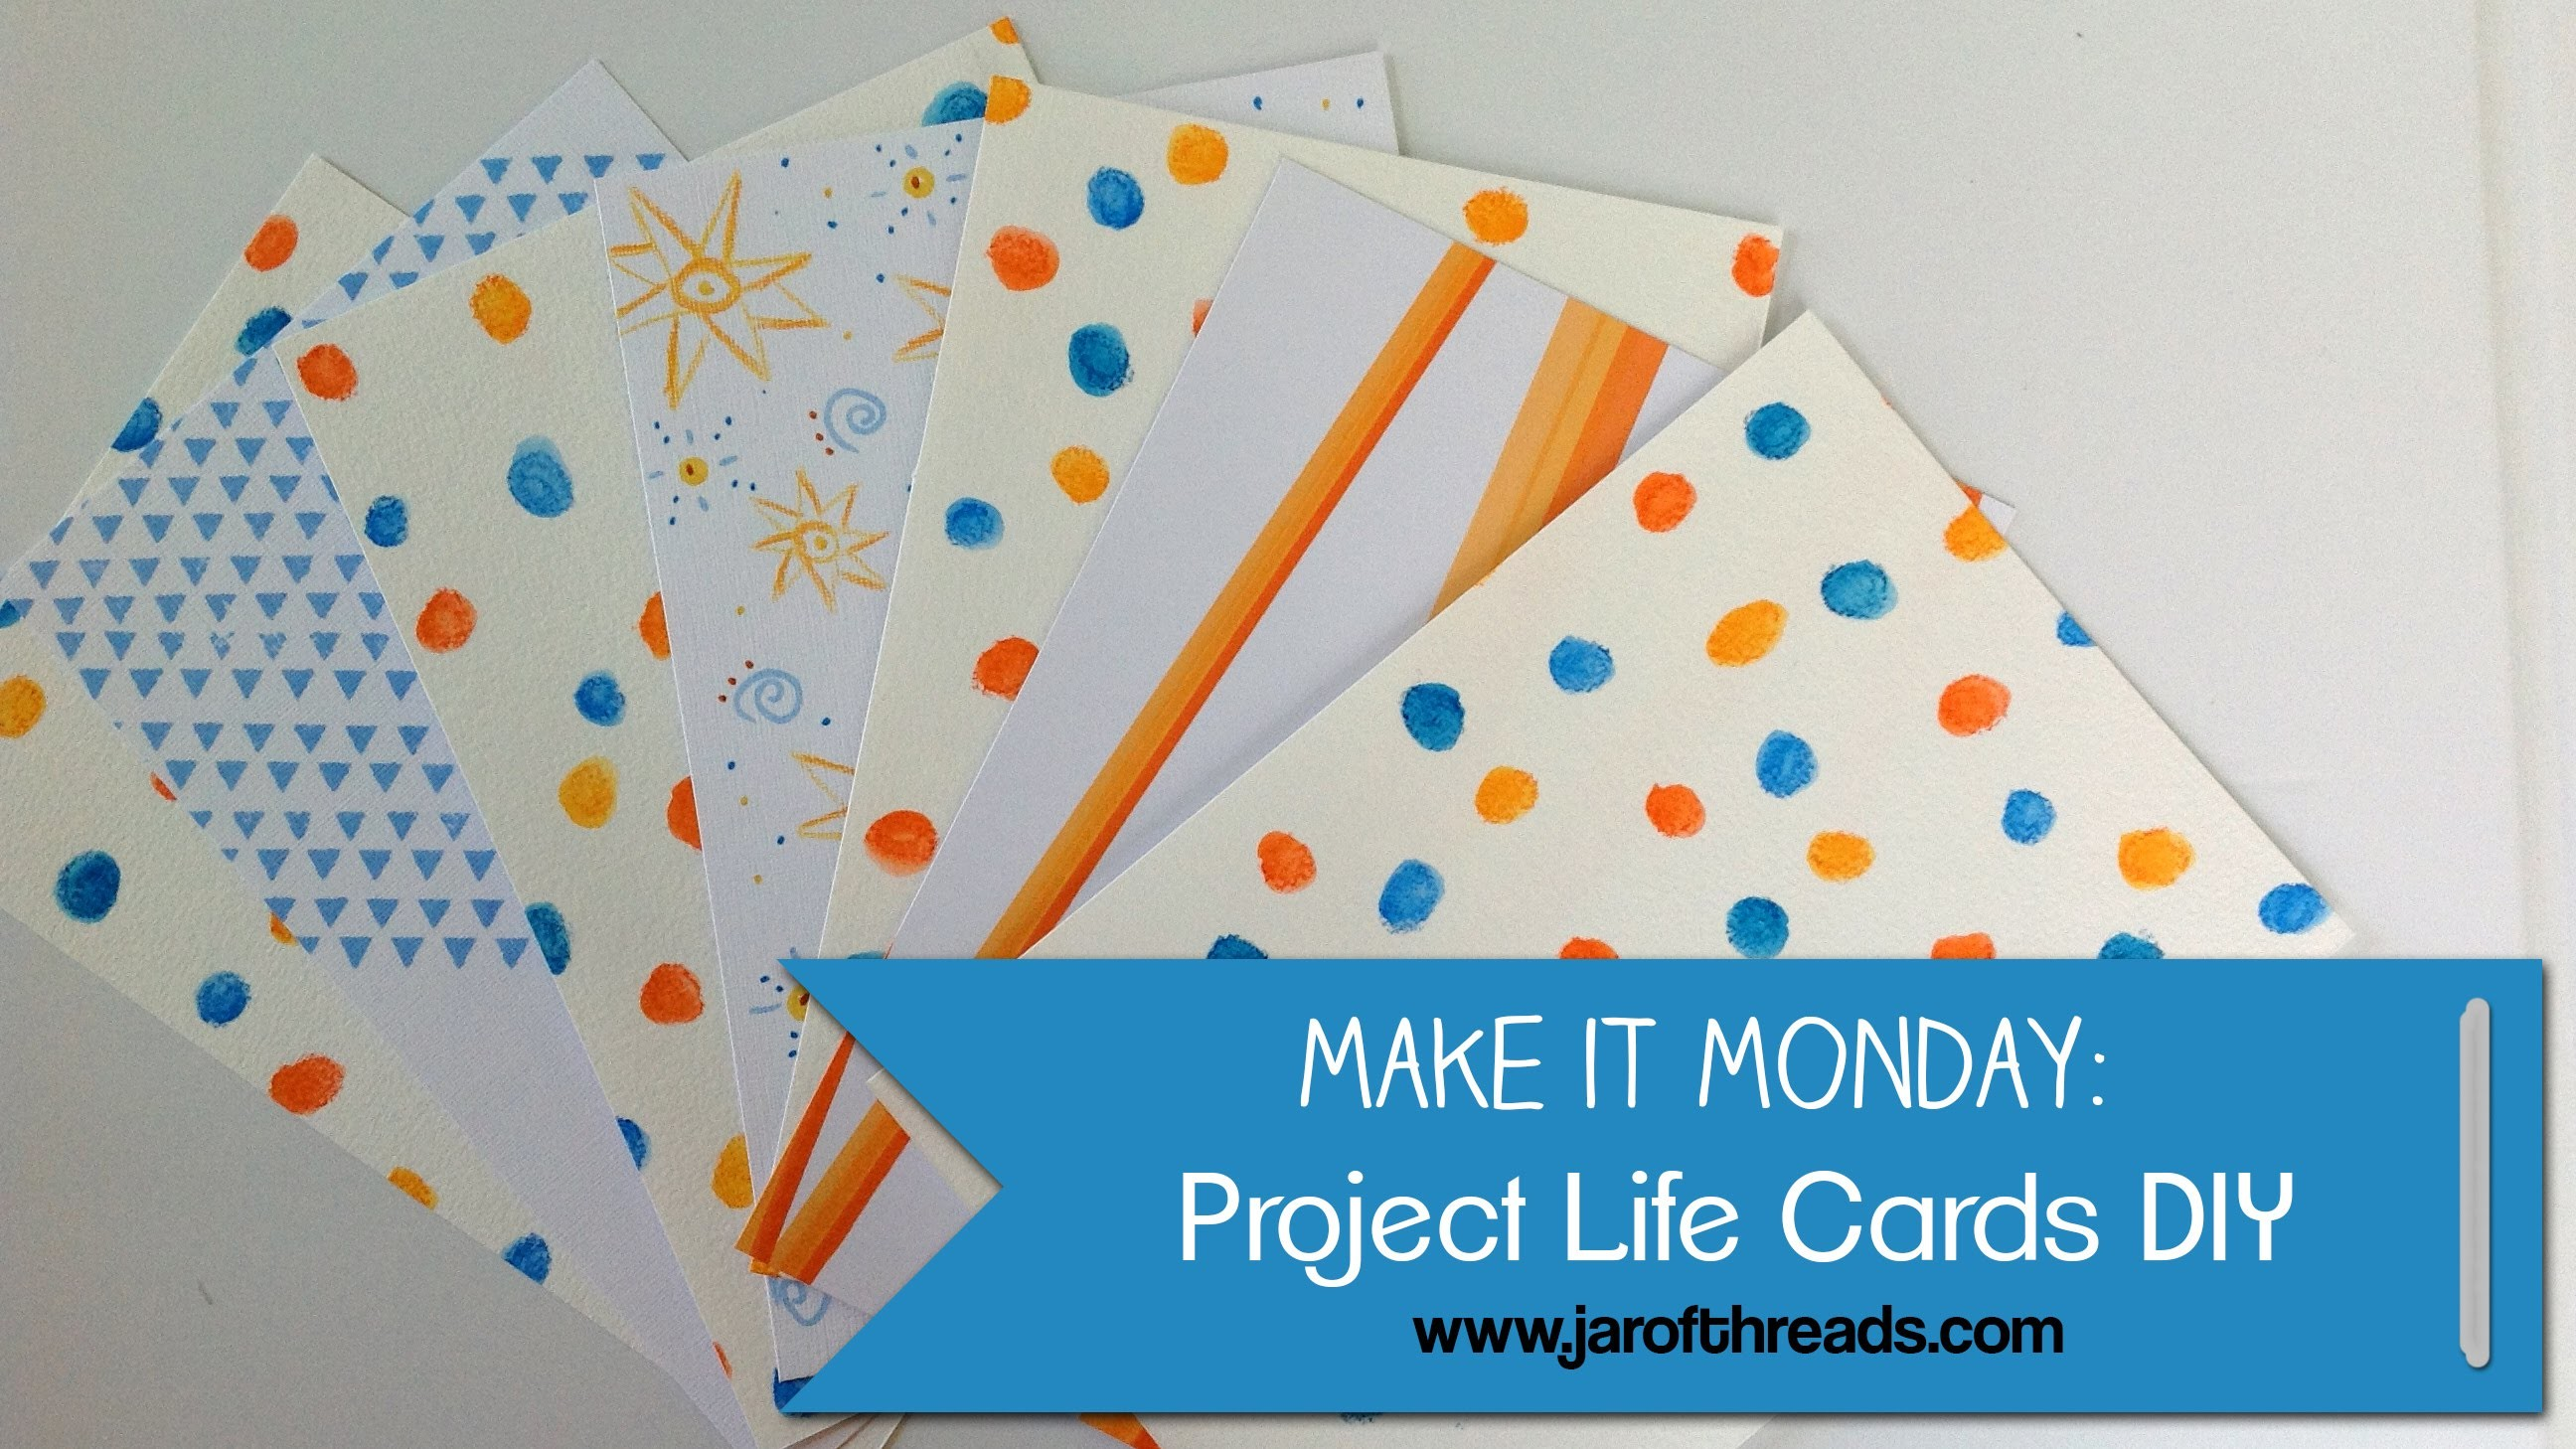 Make It Monday: DIY Project Life Cards